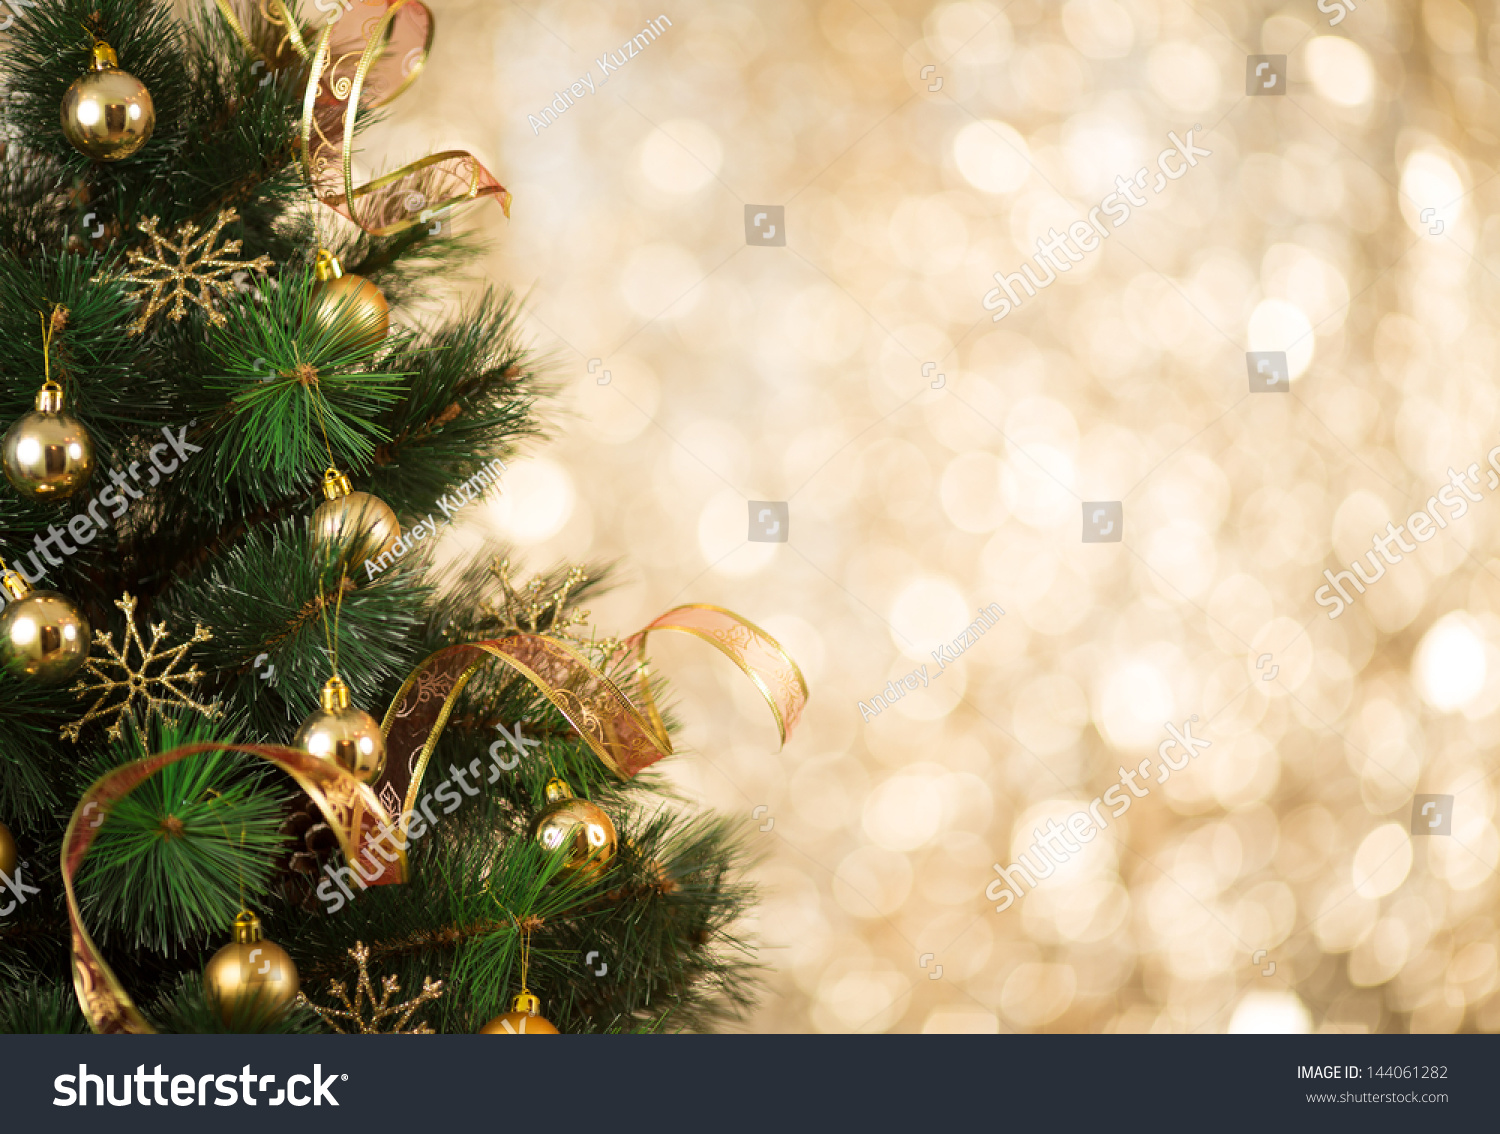 Free Illustration Background Christmas Red Gold: Gold Christmas Background Of De-Focused Lights With